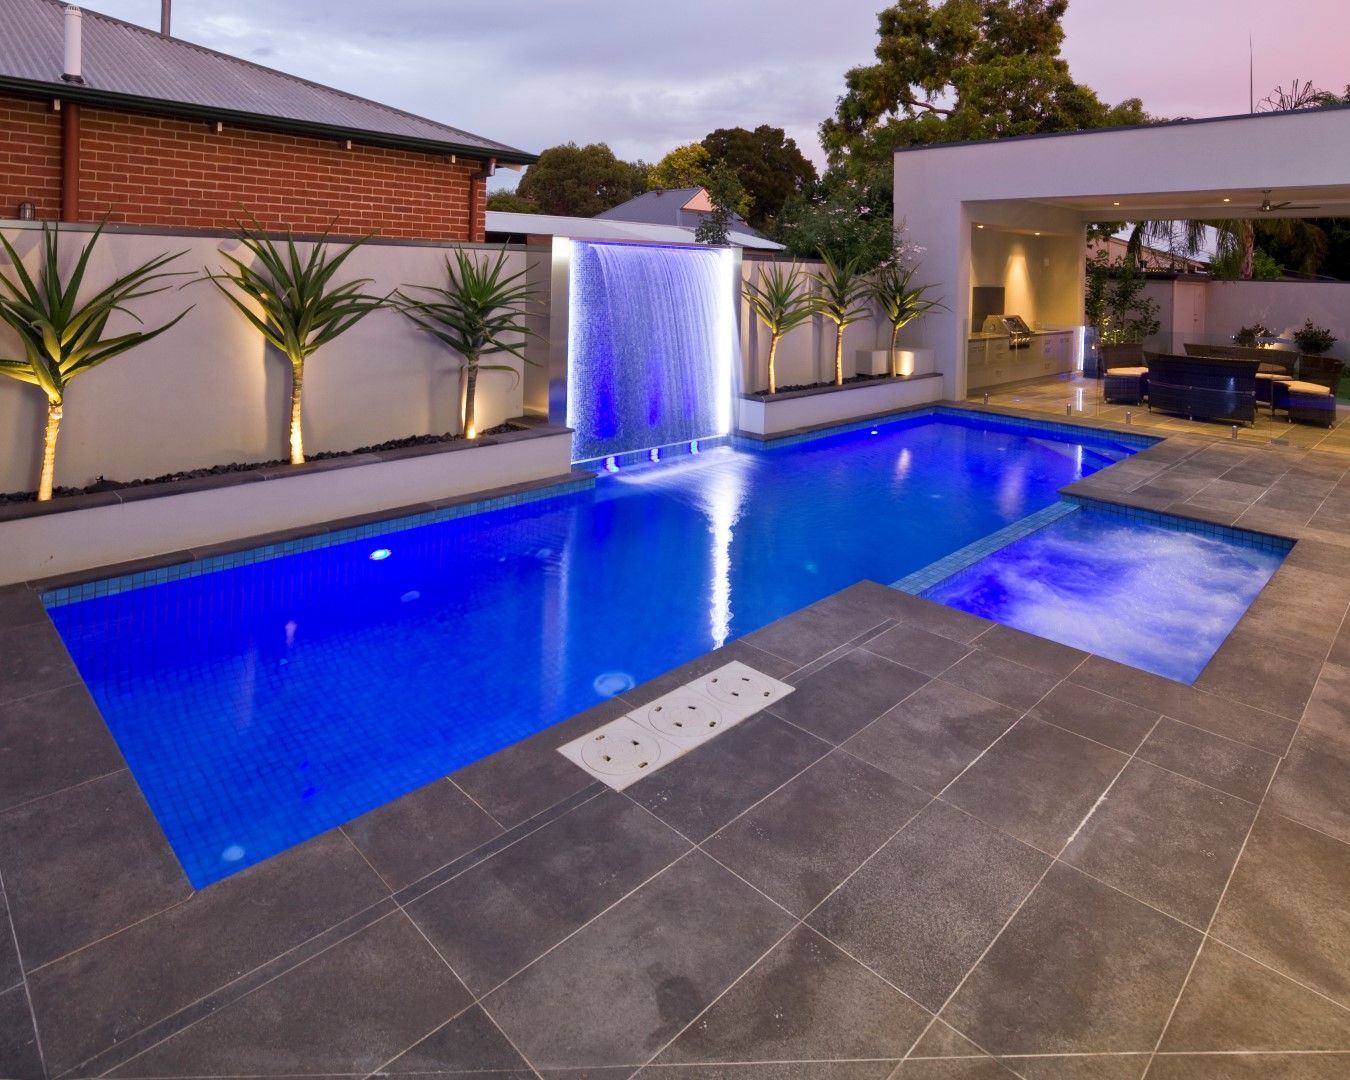 Awesome #ConcretePool #SwimmingPool #FreedomPools